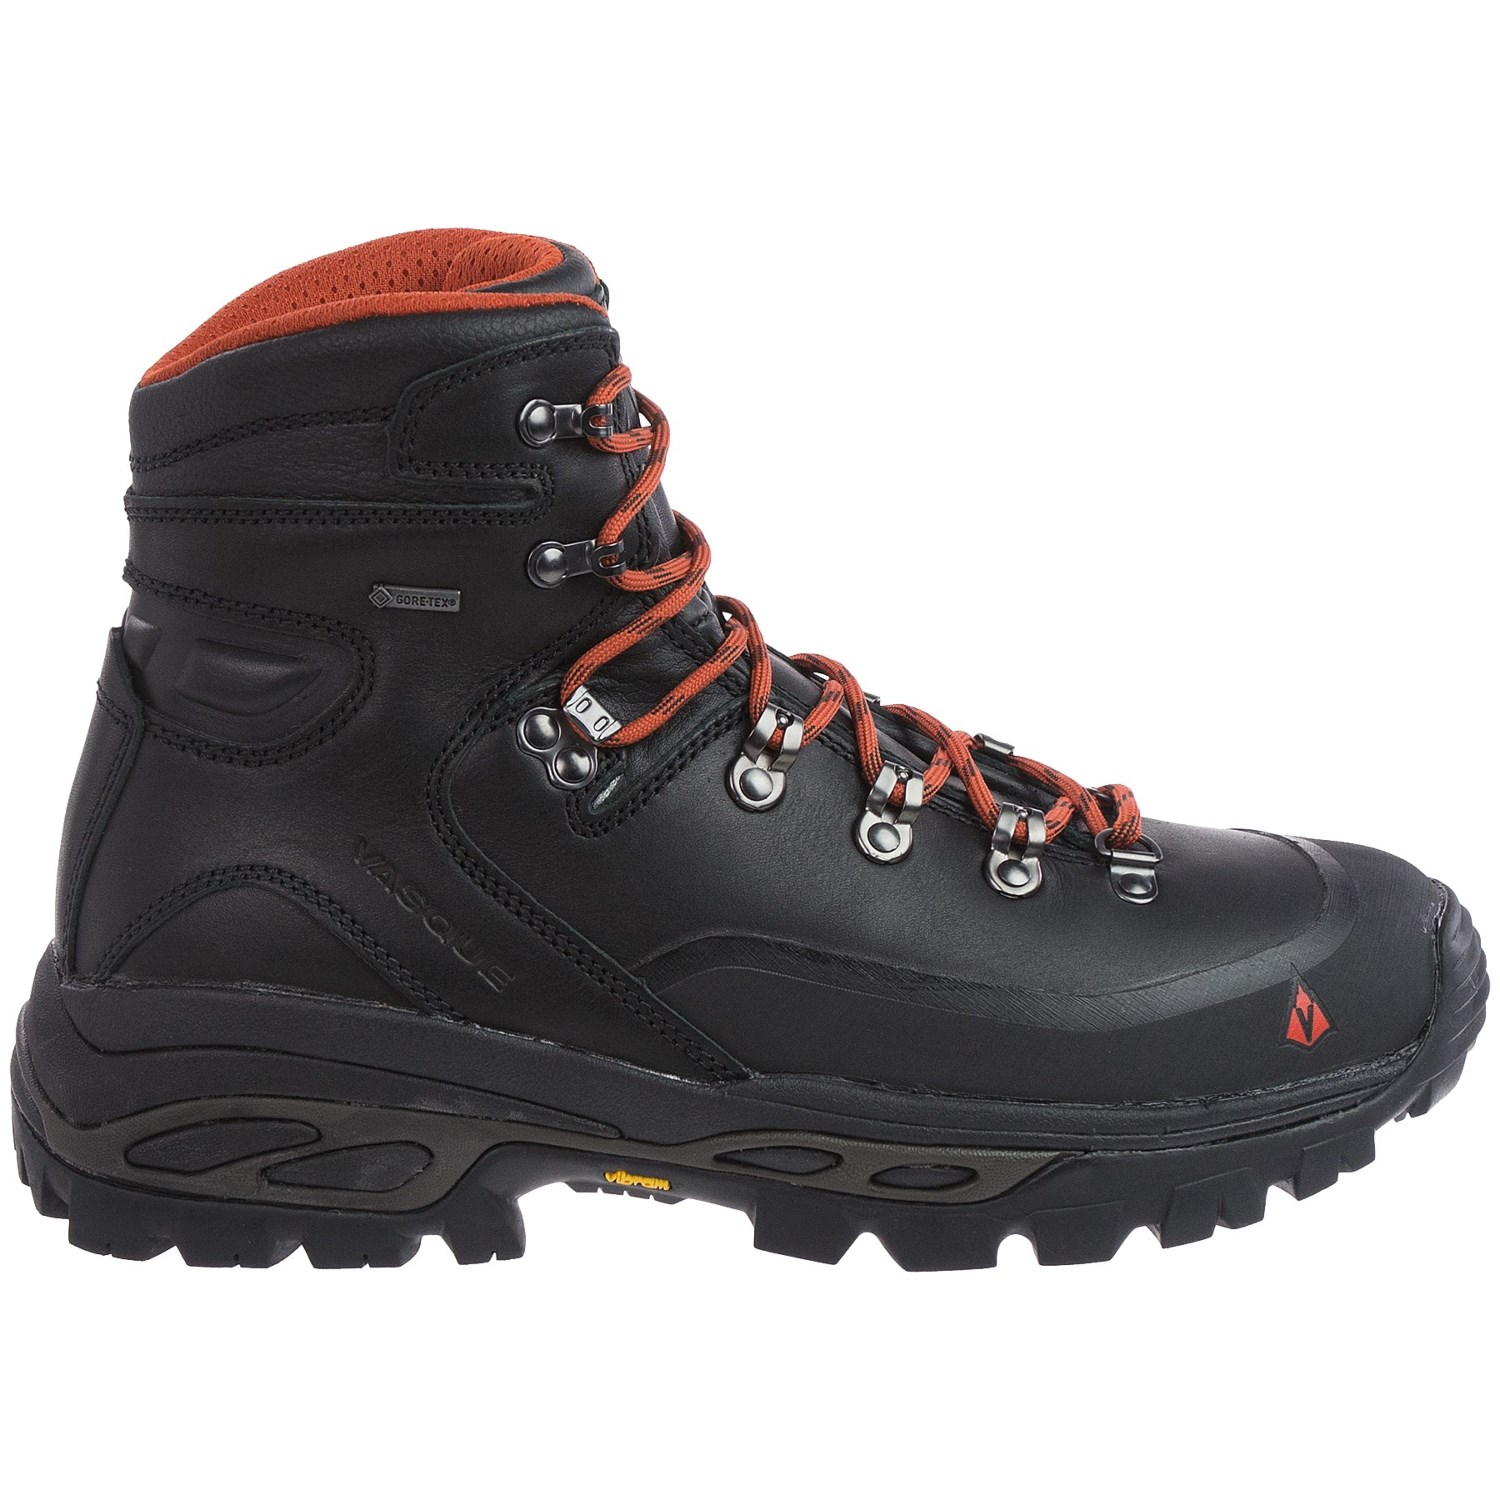 Vasque Men S Hiking Shoes D Gore Tex